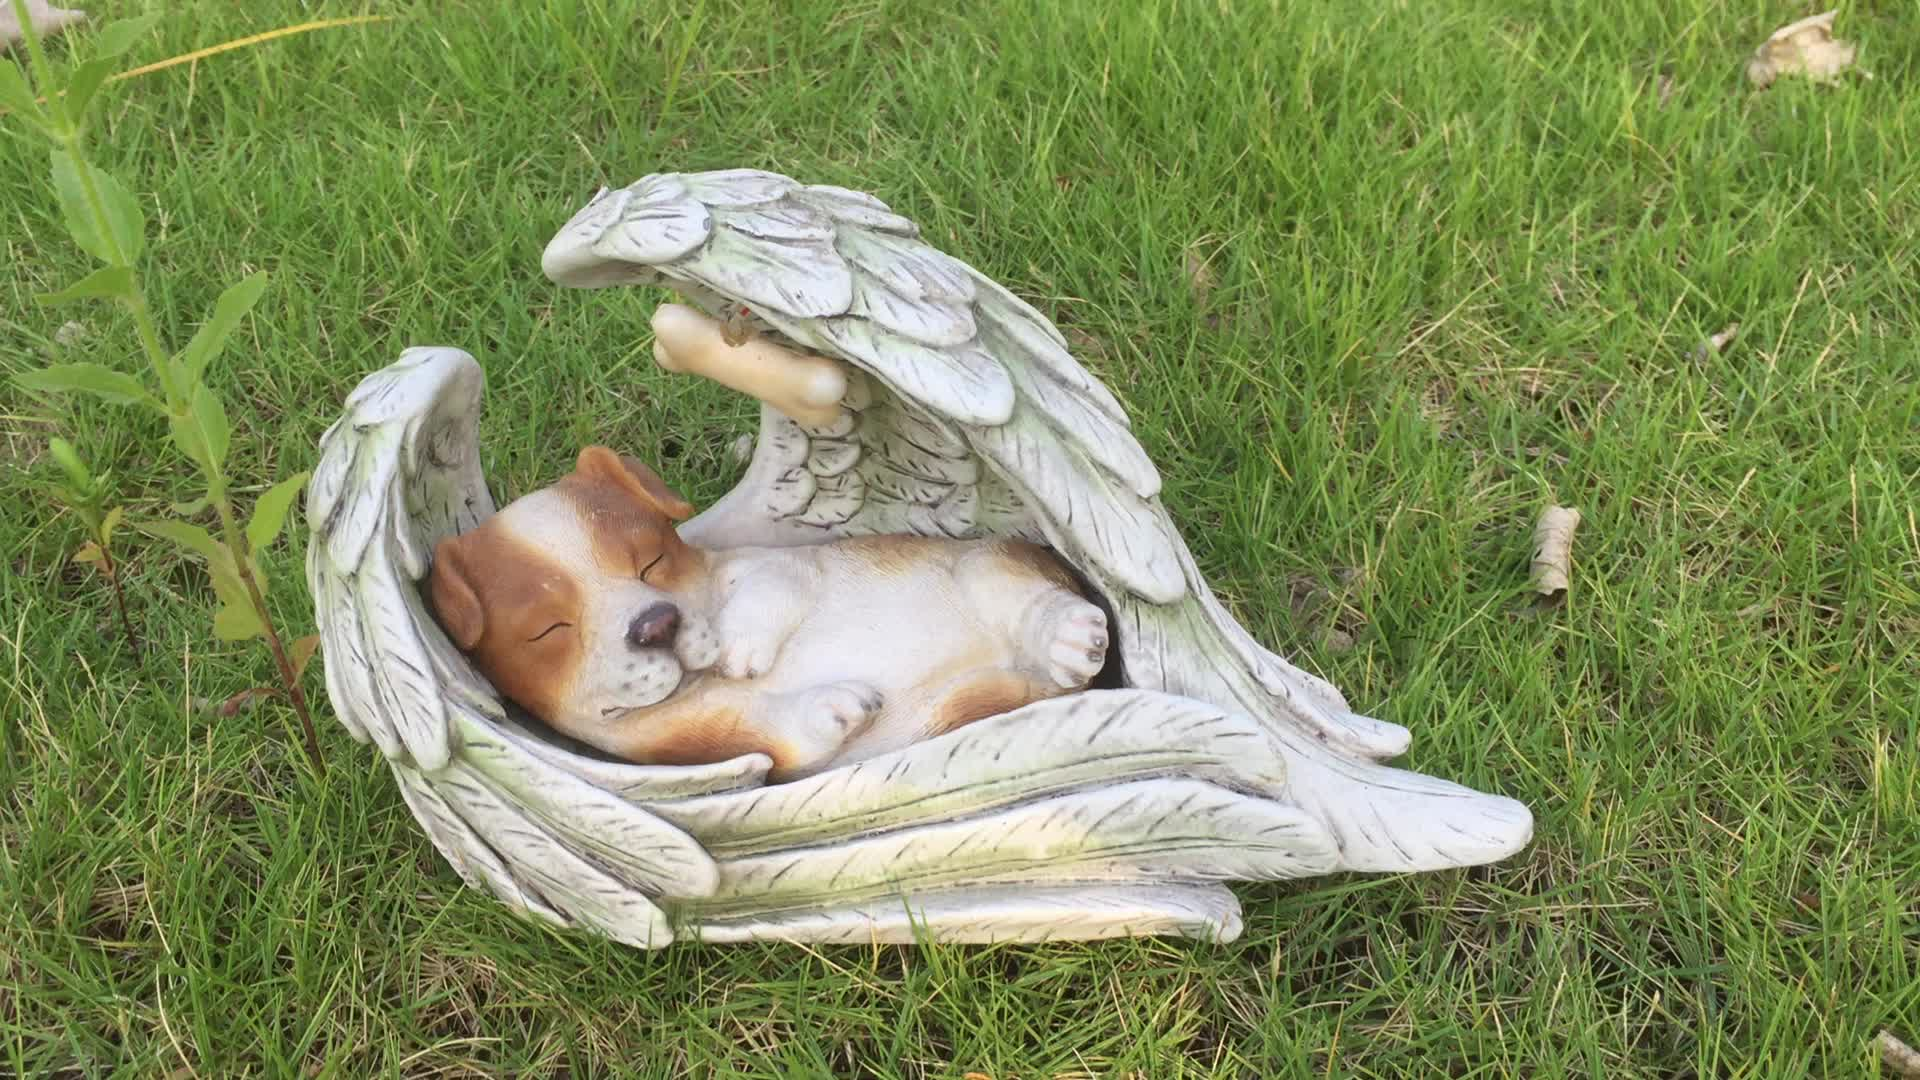 Garden decor solar light resin wing angel figurine dog, personalized grave decorations polyresin sleeping in wing dog memorial*